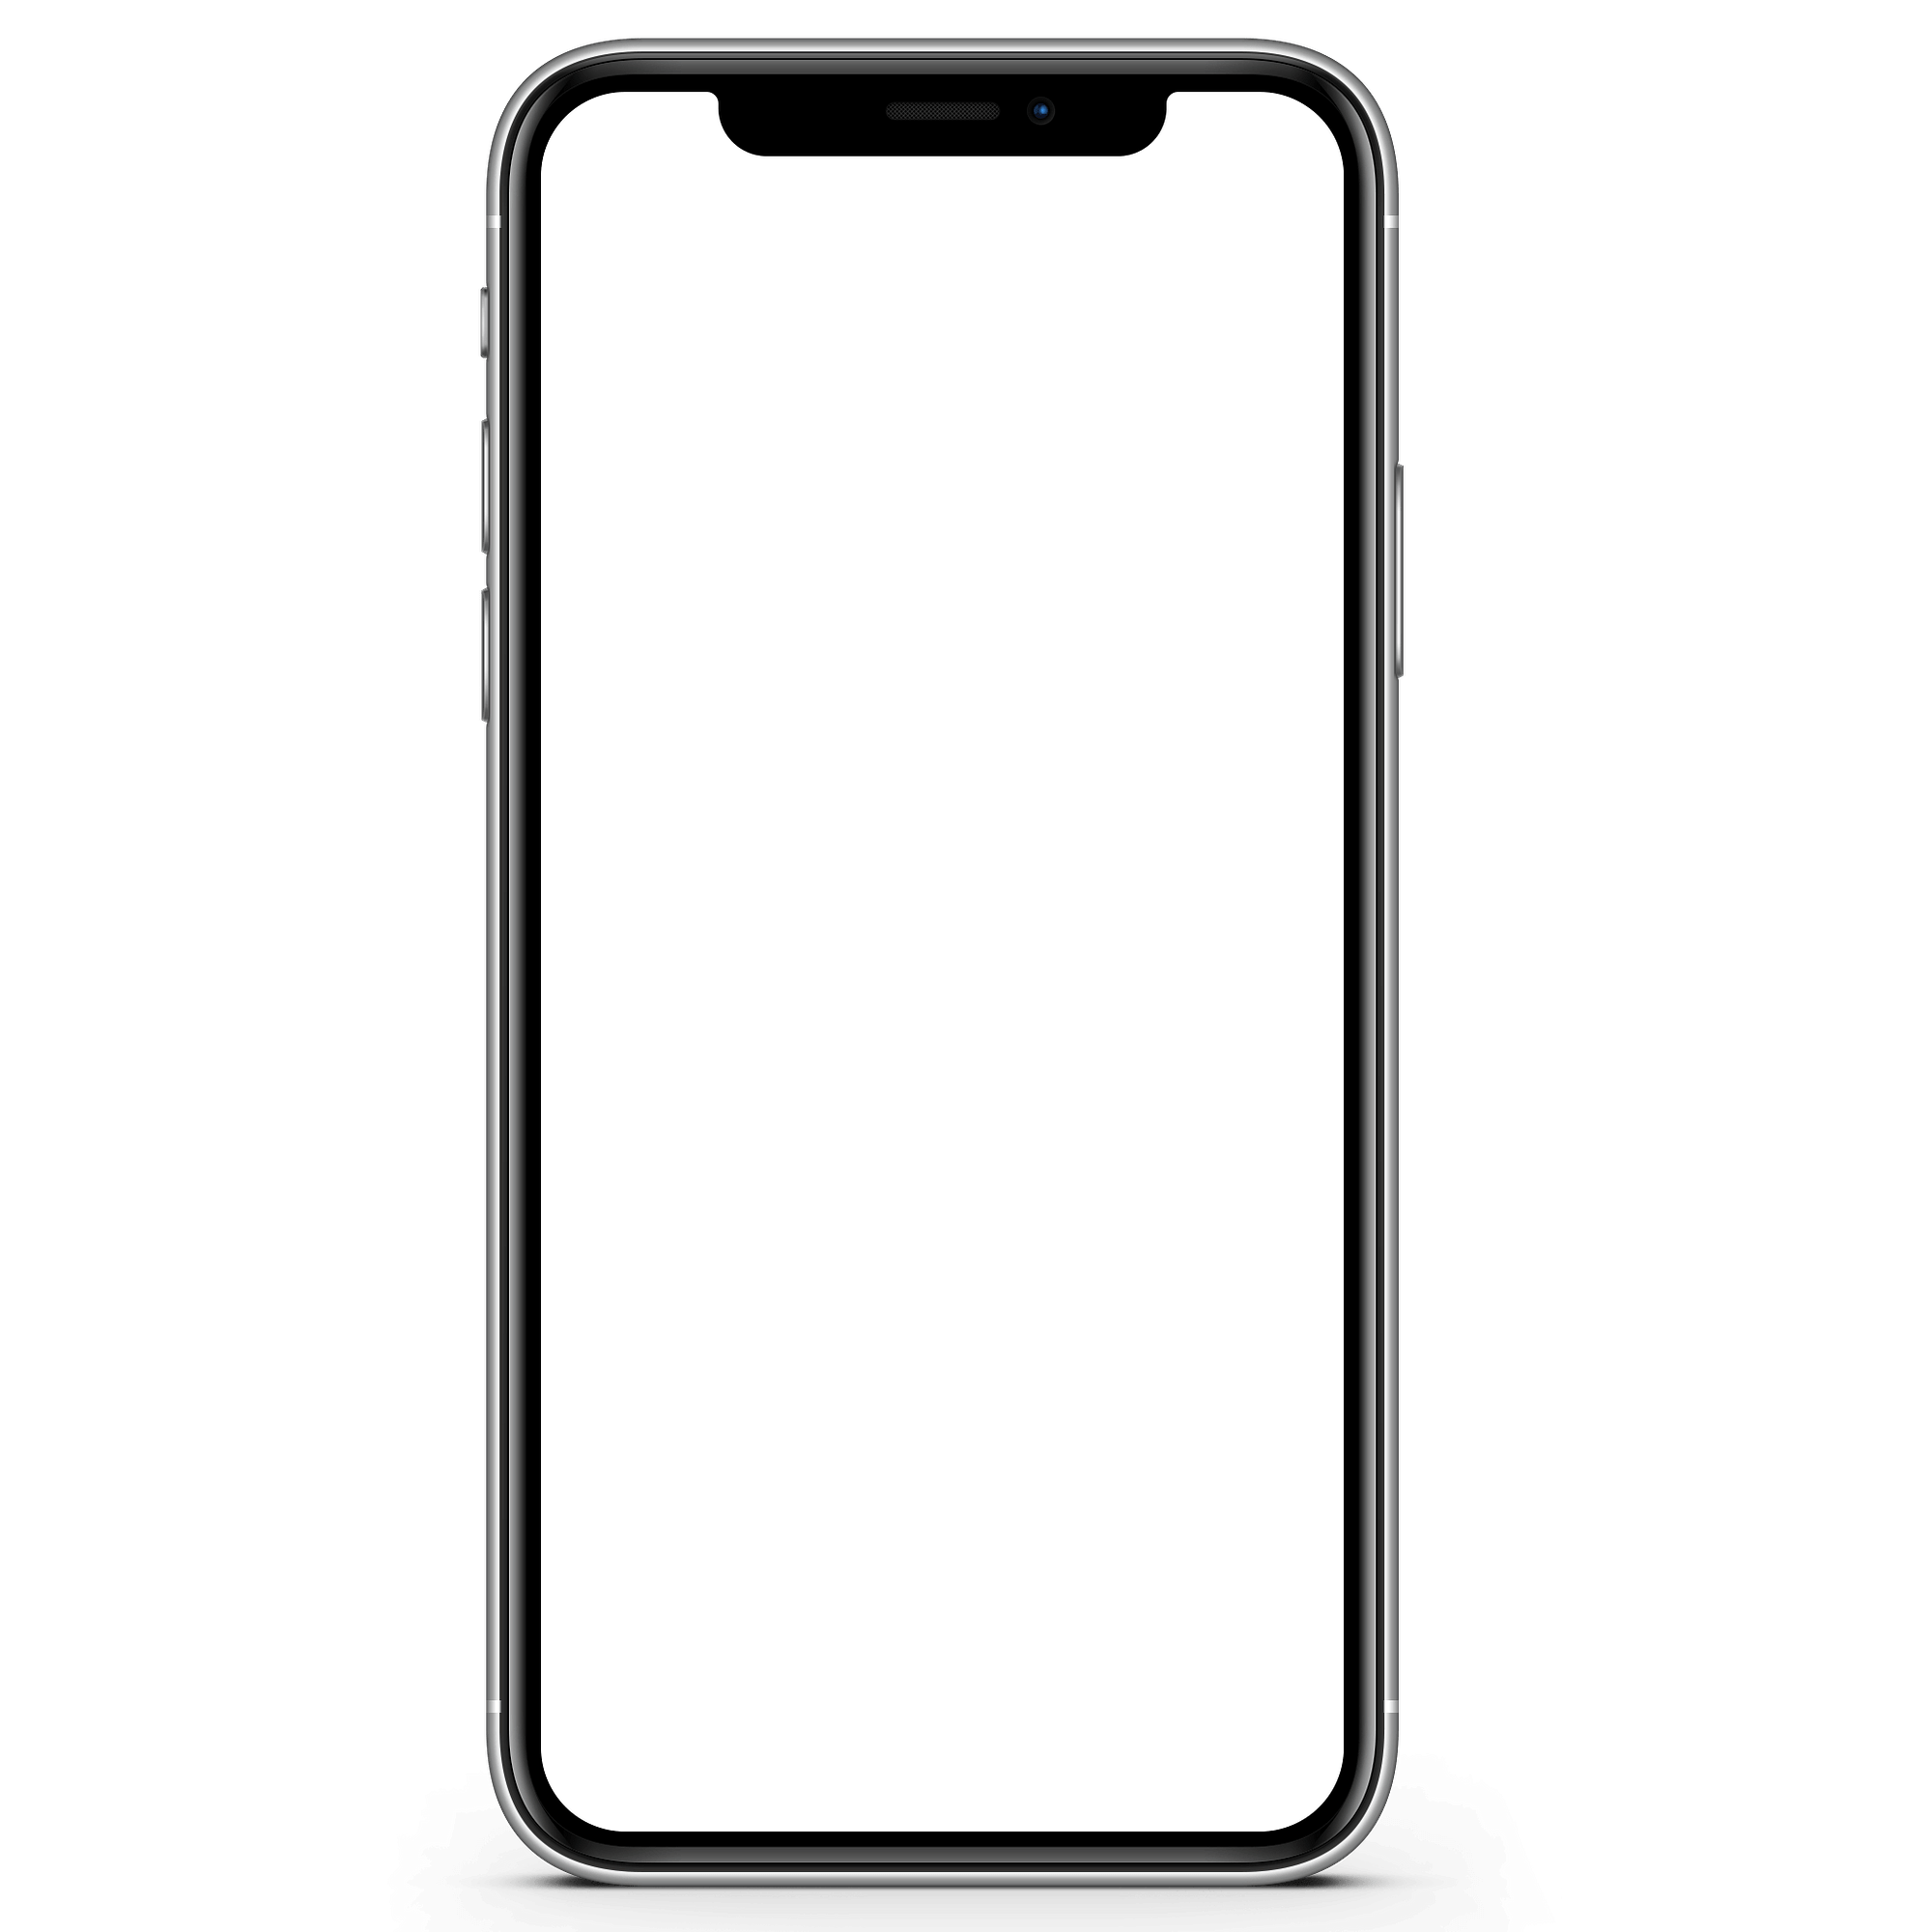 Iphone Xr Png & Free Iphone Xr.png Transparent Images ...